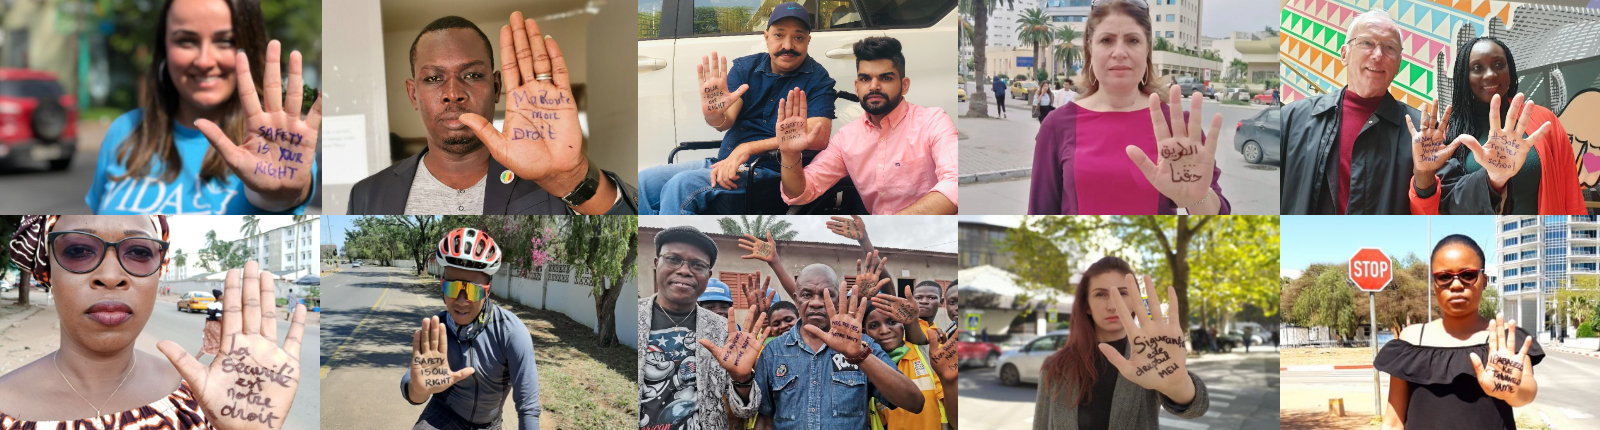 people of different colours and gender showing palm of hand with writing Safety is our right